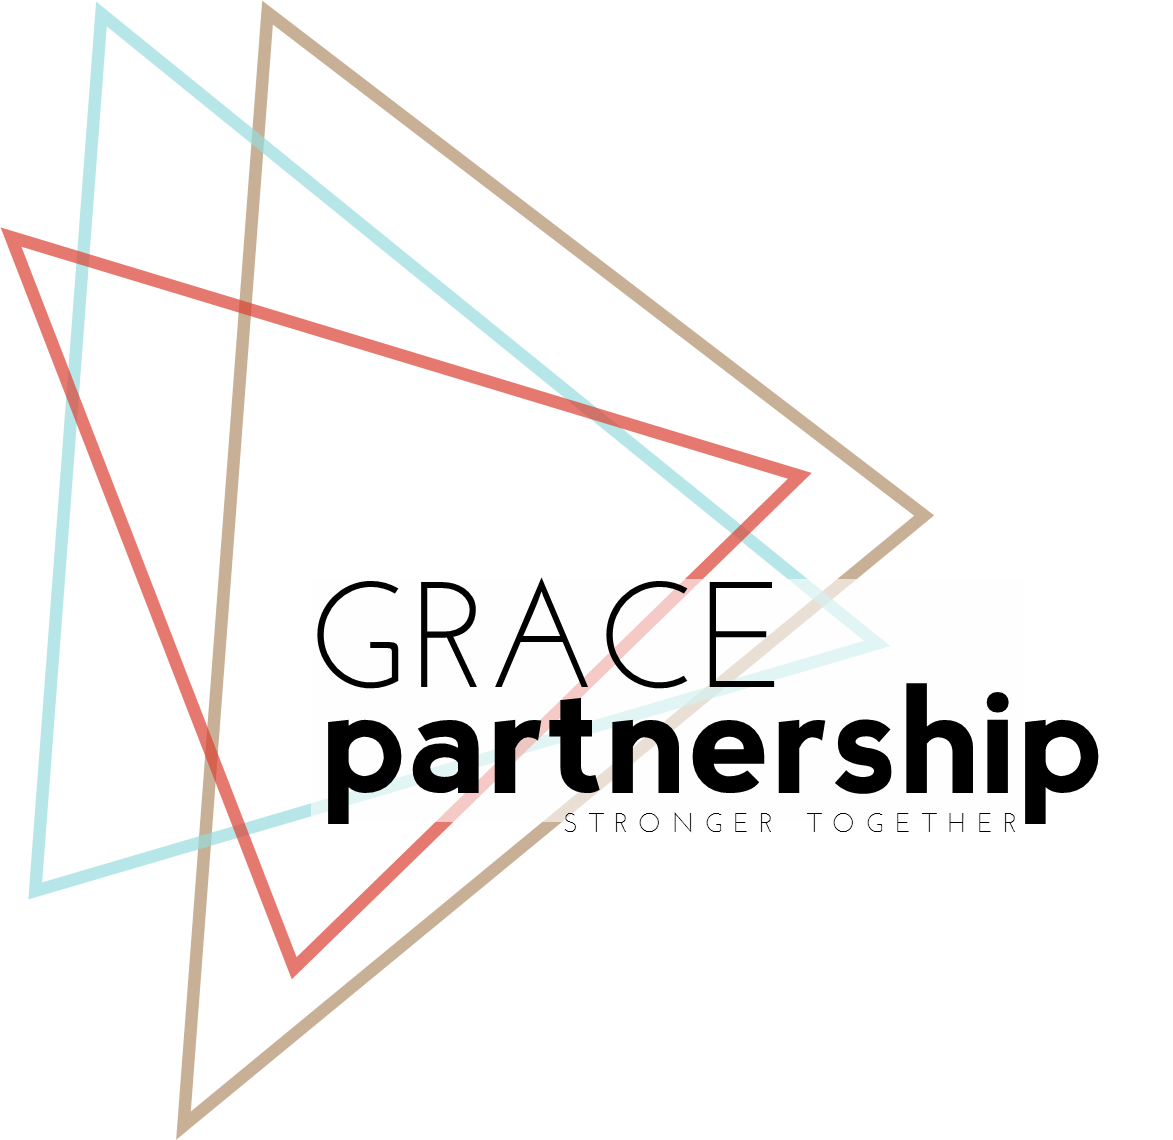 Grace Partnership Logo 2016 FINAL